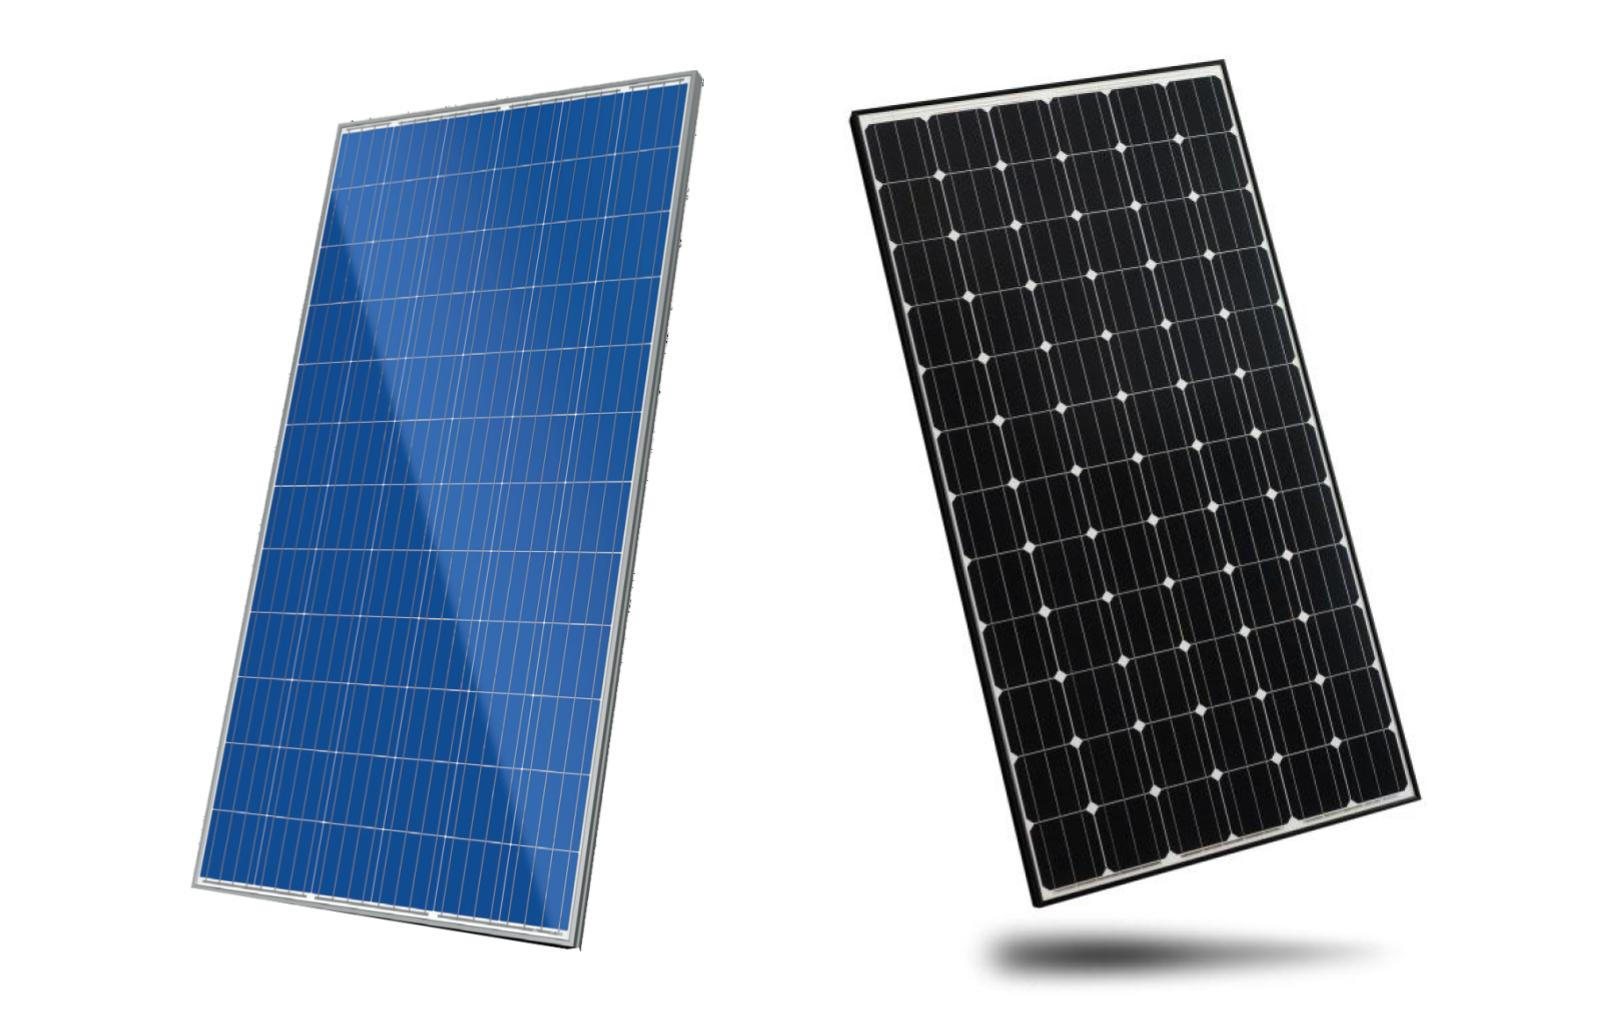 Black solar panels vs blue (1)